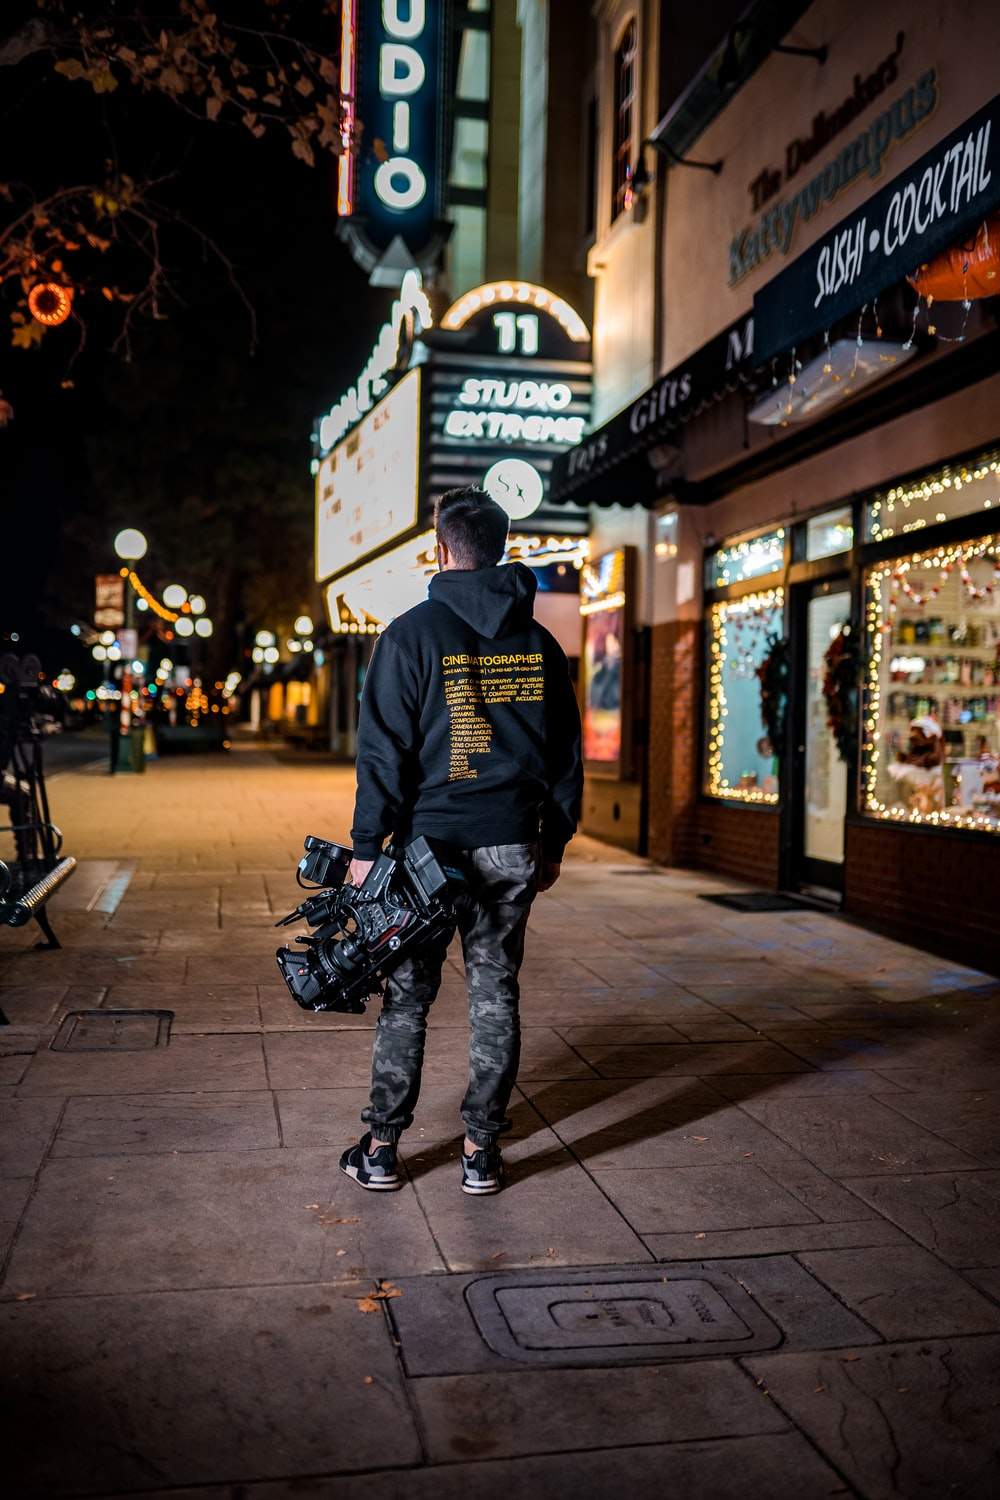 man in black long sleeve shirt and black pants standing on sidewalk during night time